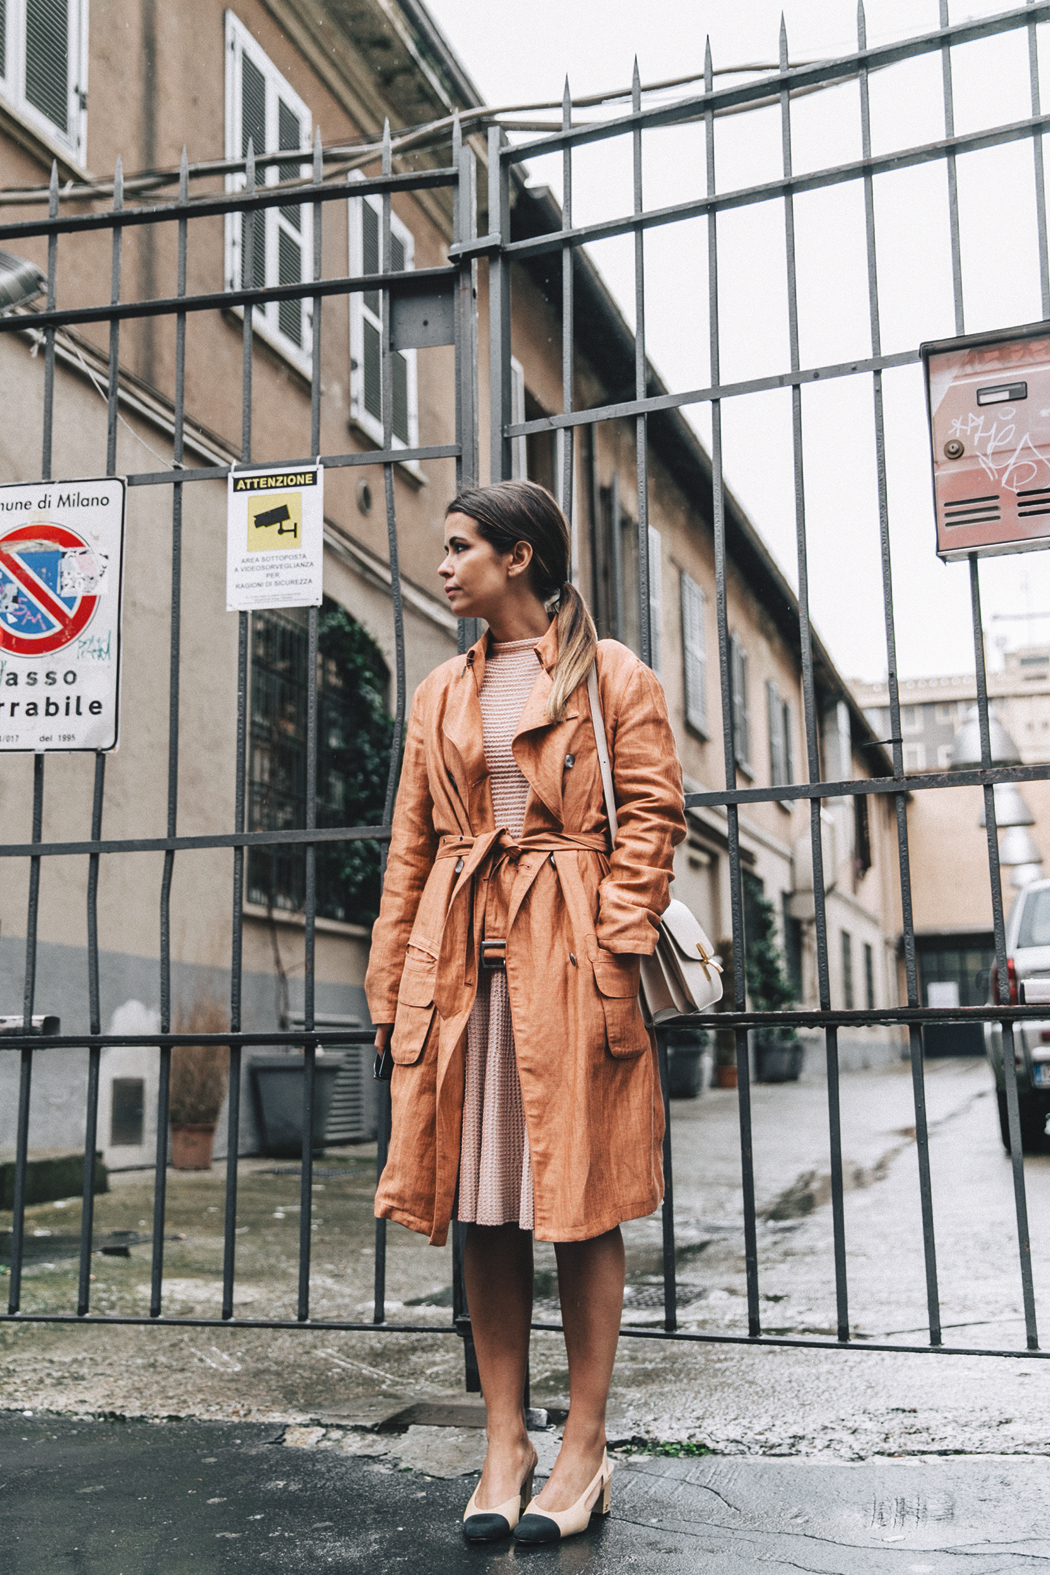 Armani-Trench_Coat-Pink_Dress-Chanel_Slingbacks-Celine_Box_Bag-Outfit-Milan_Fashion_Week-Street_Style-13